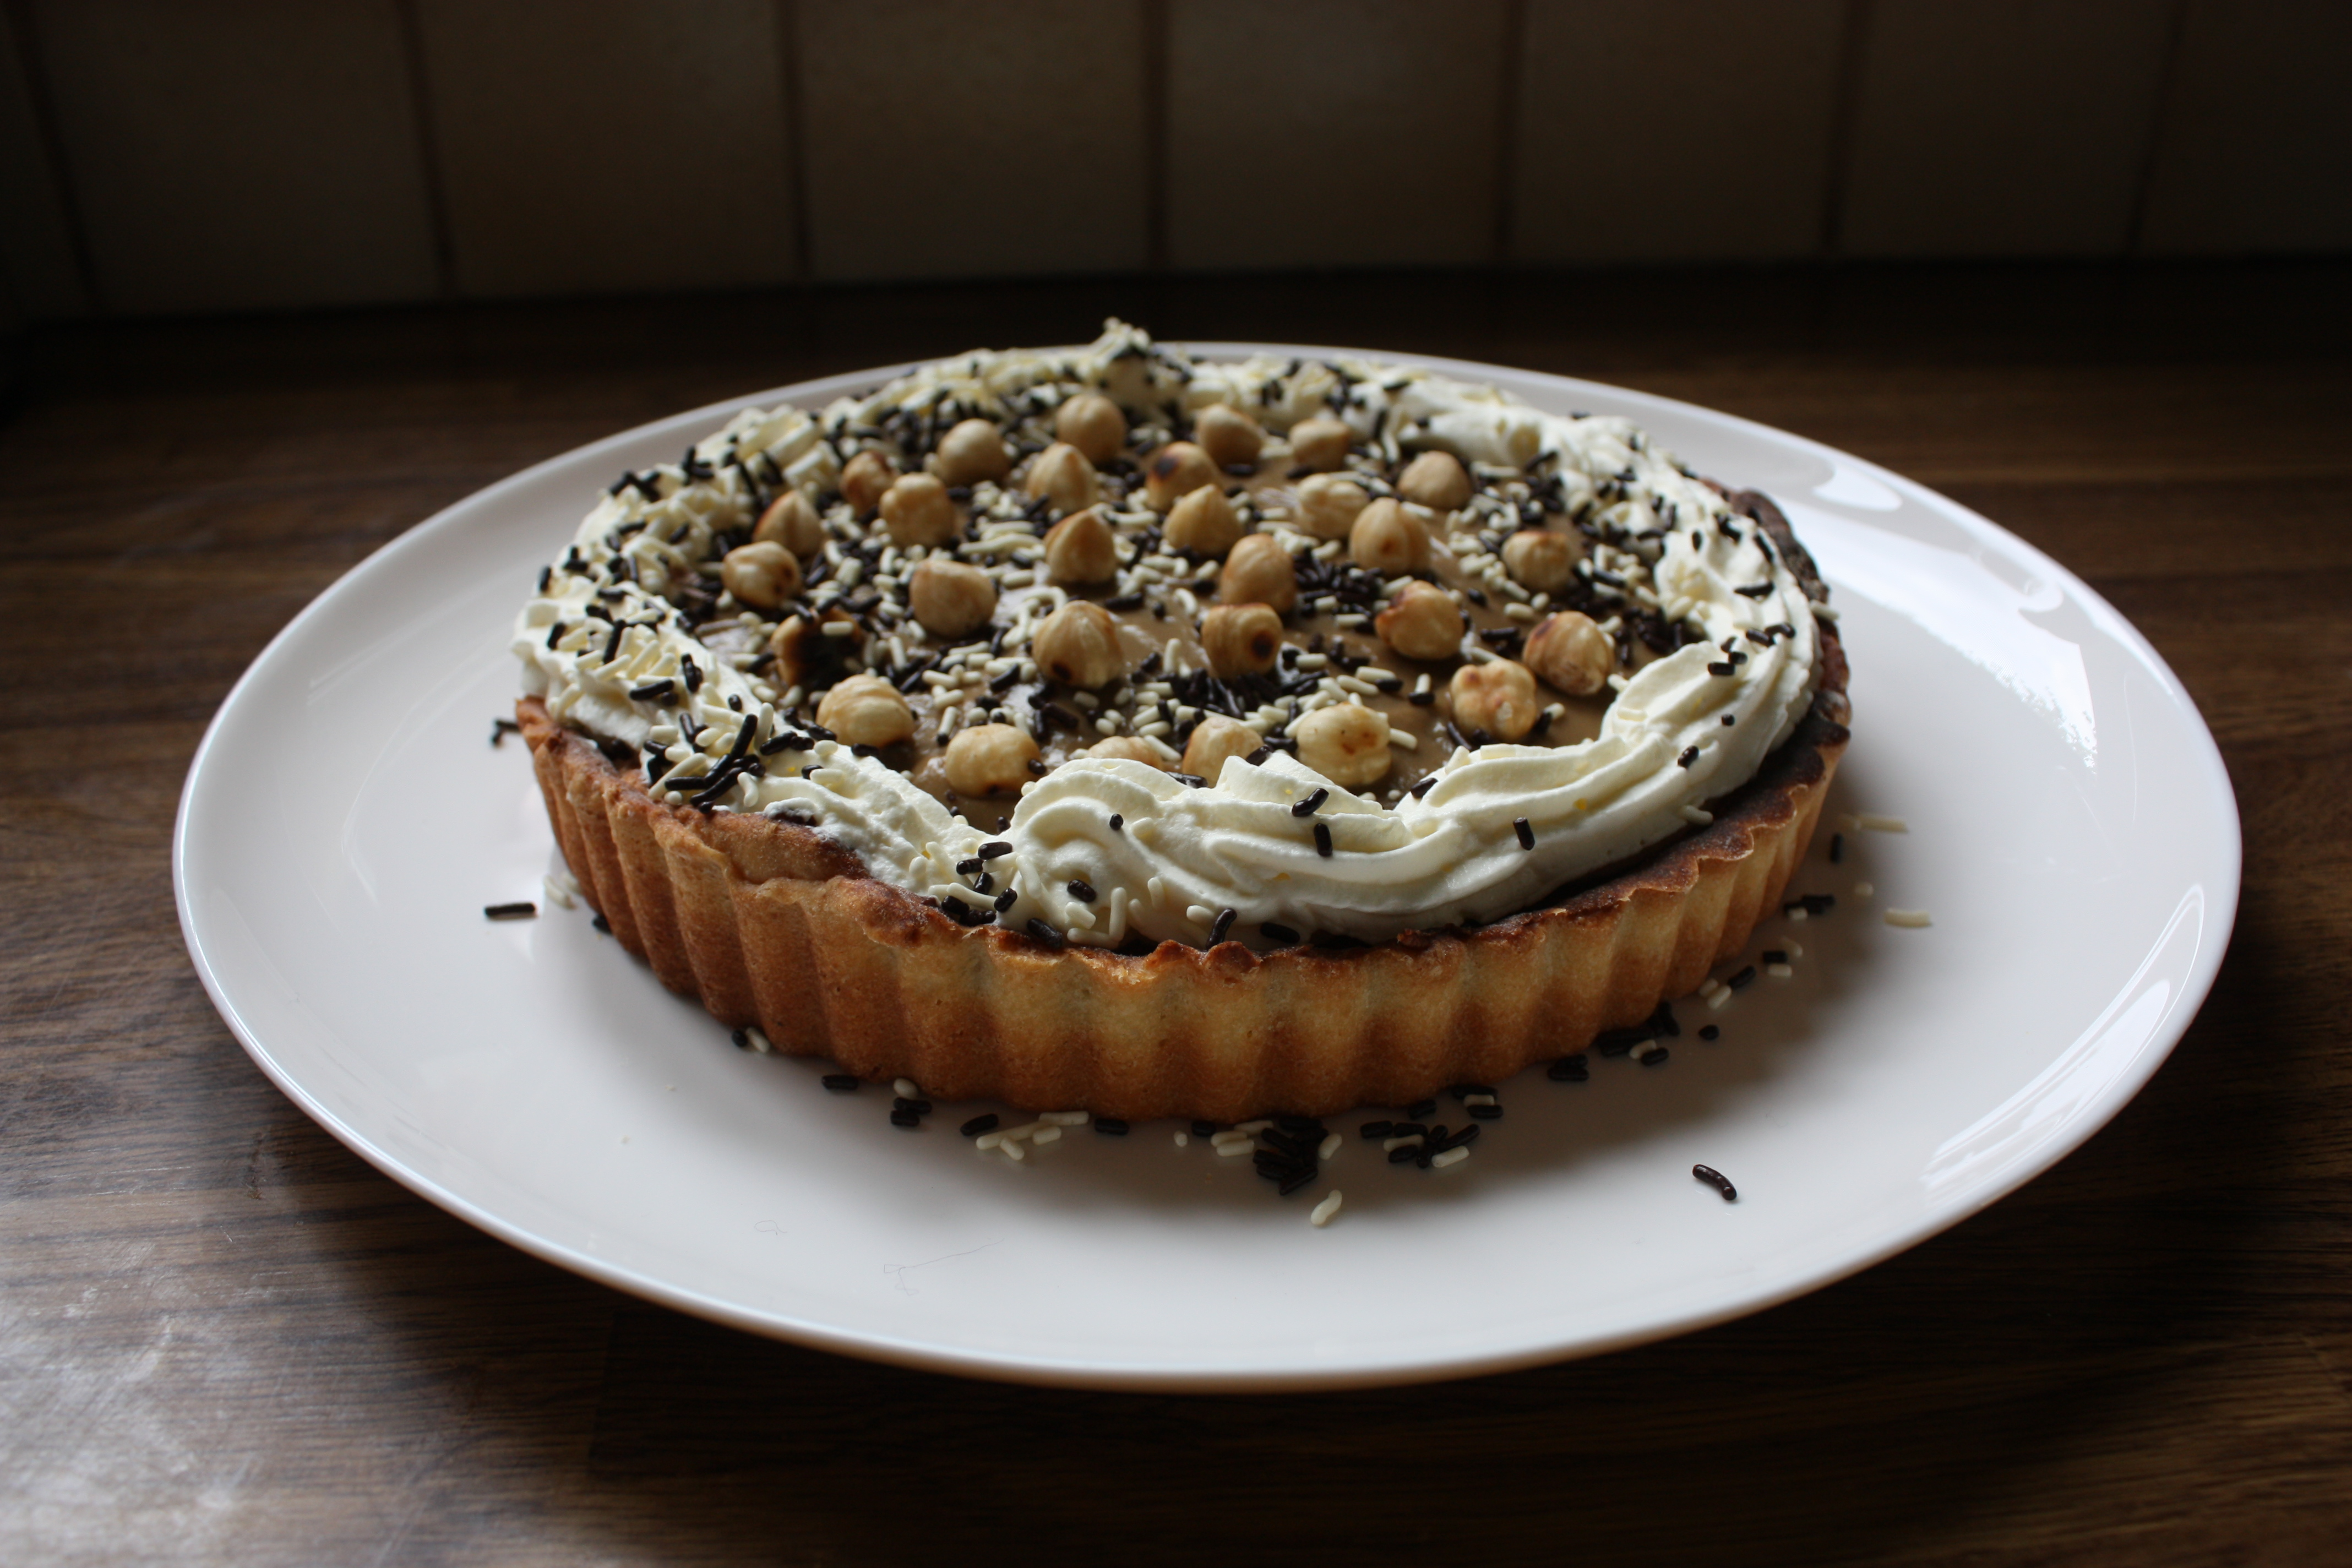 Coffee and caramel tart with hazelnuts – Jeroen Valkenier Recipes